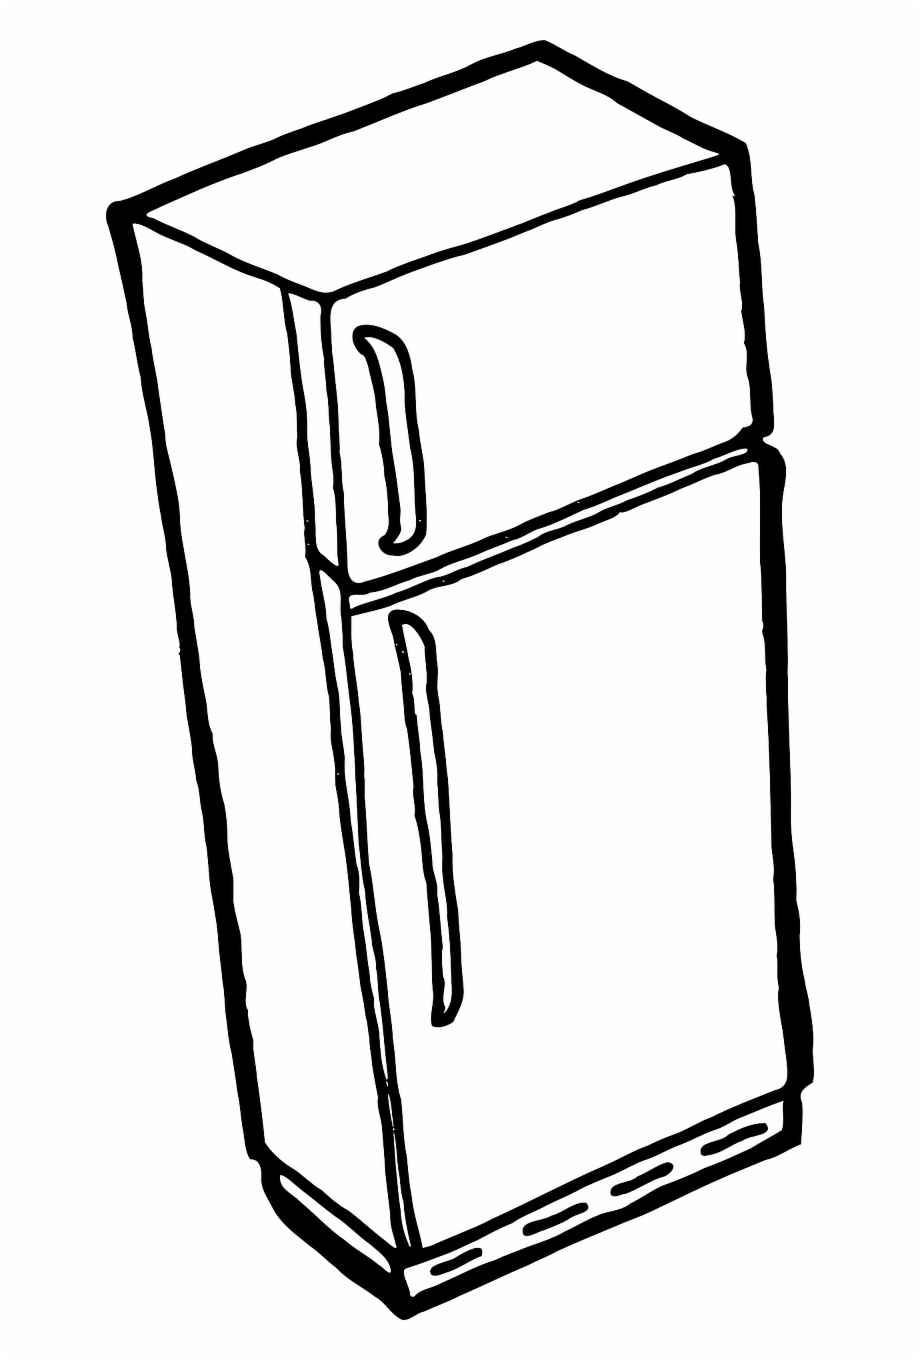 Refrigerator Fridge Freezer Cold Png Image.